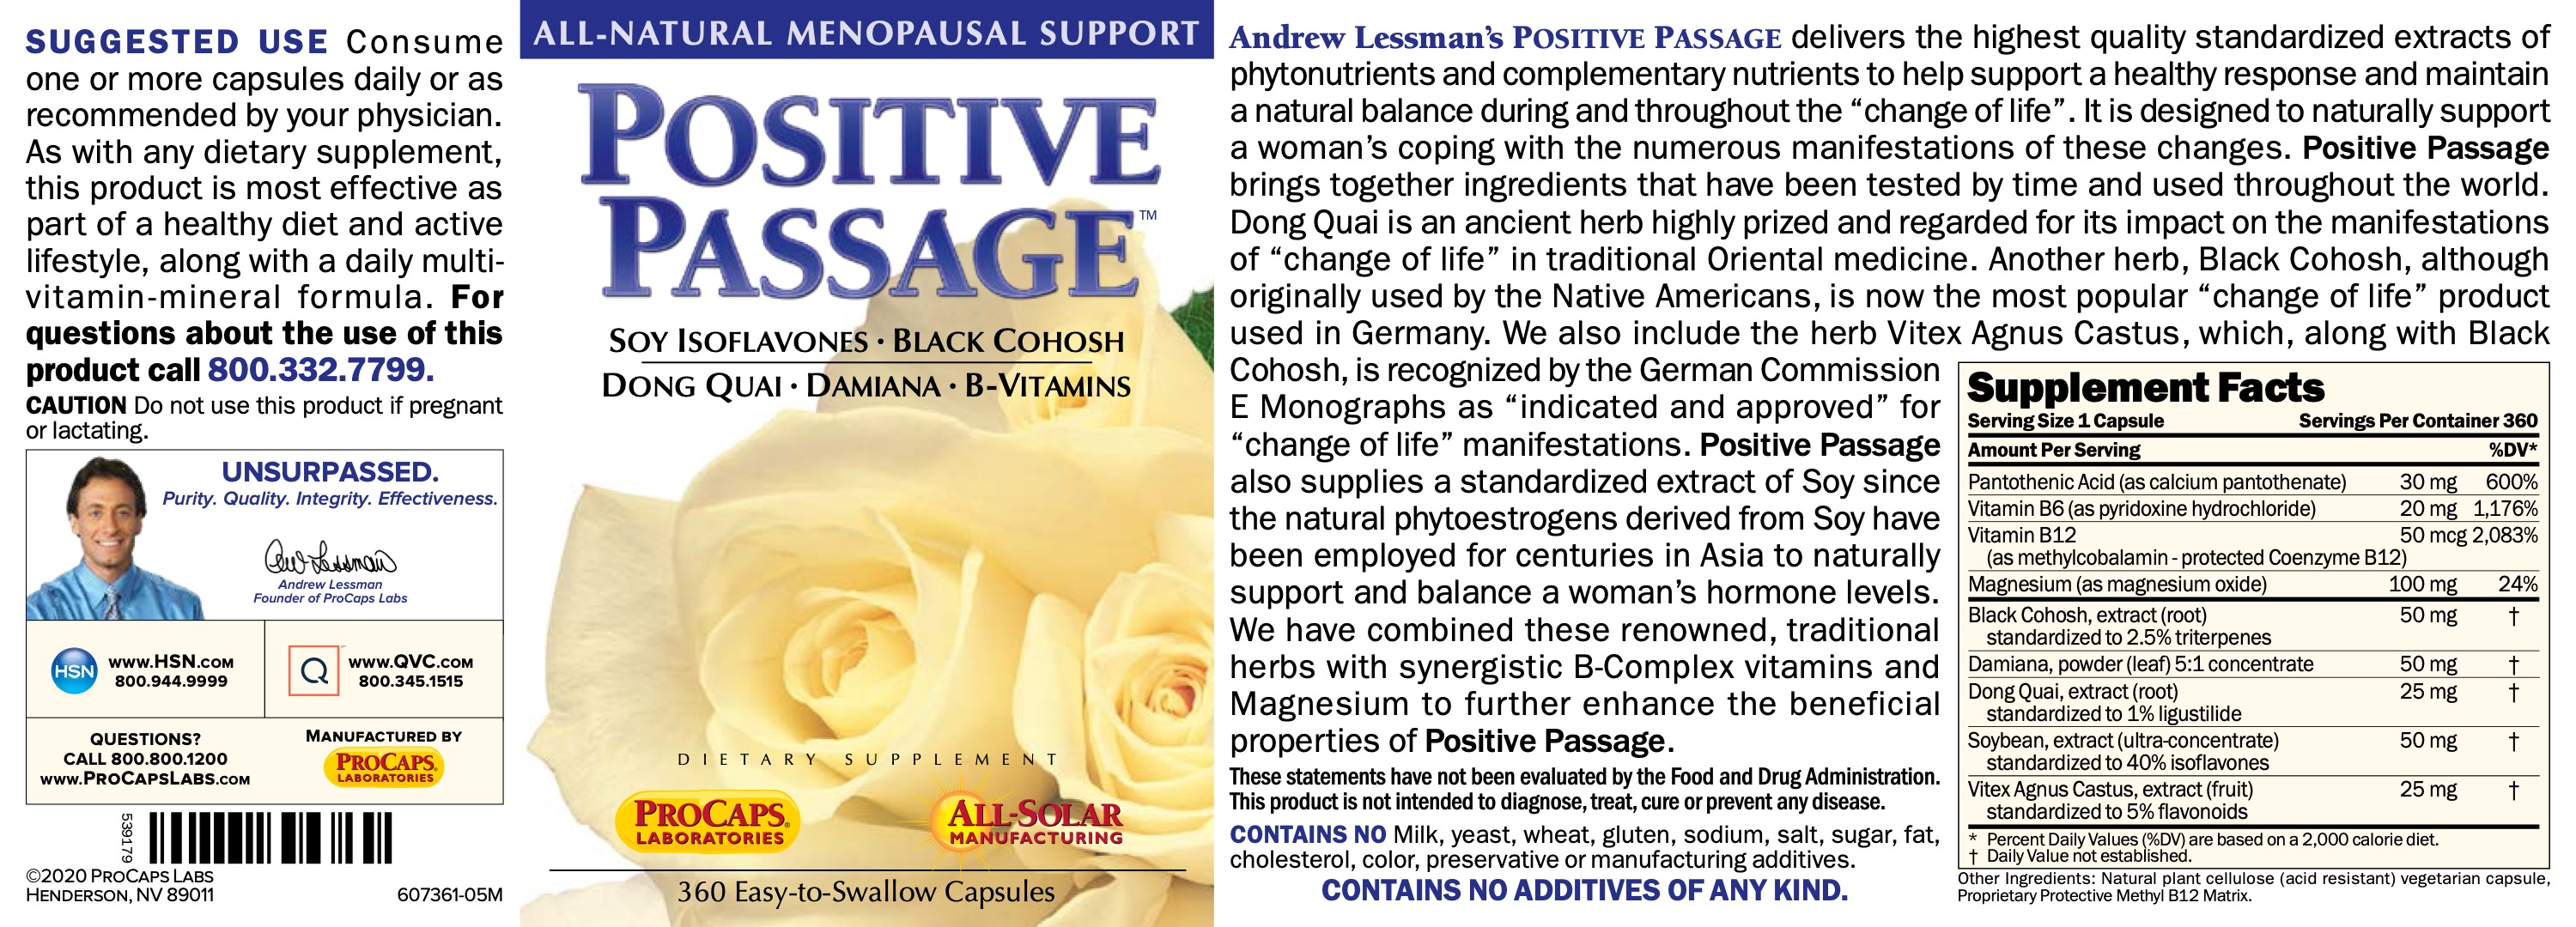 Positive-Passage-Capsule-Women-s-Products